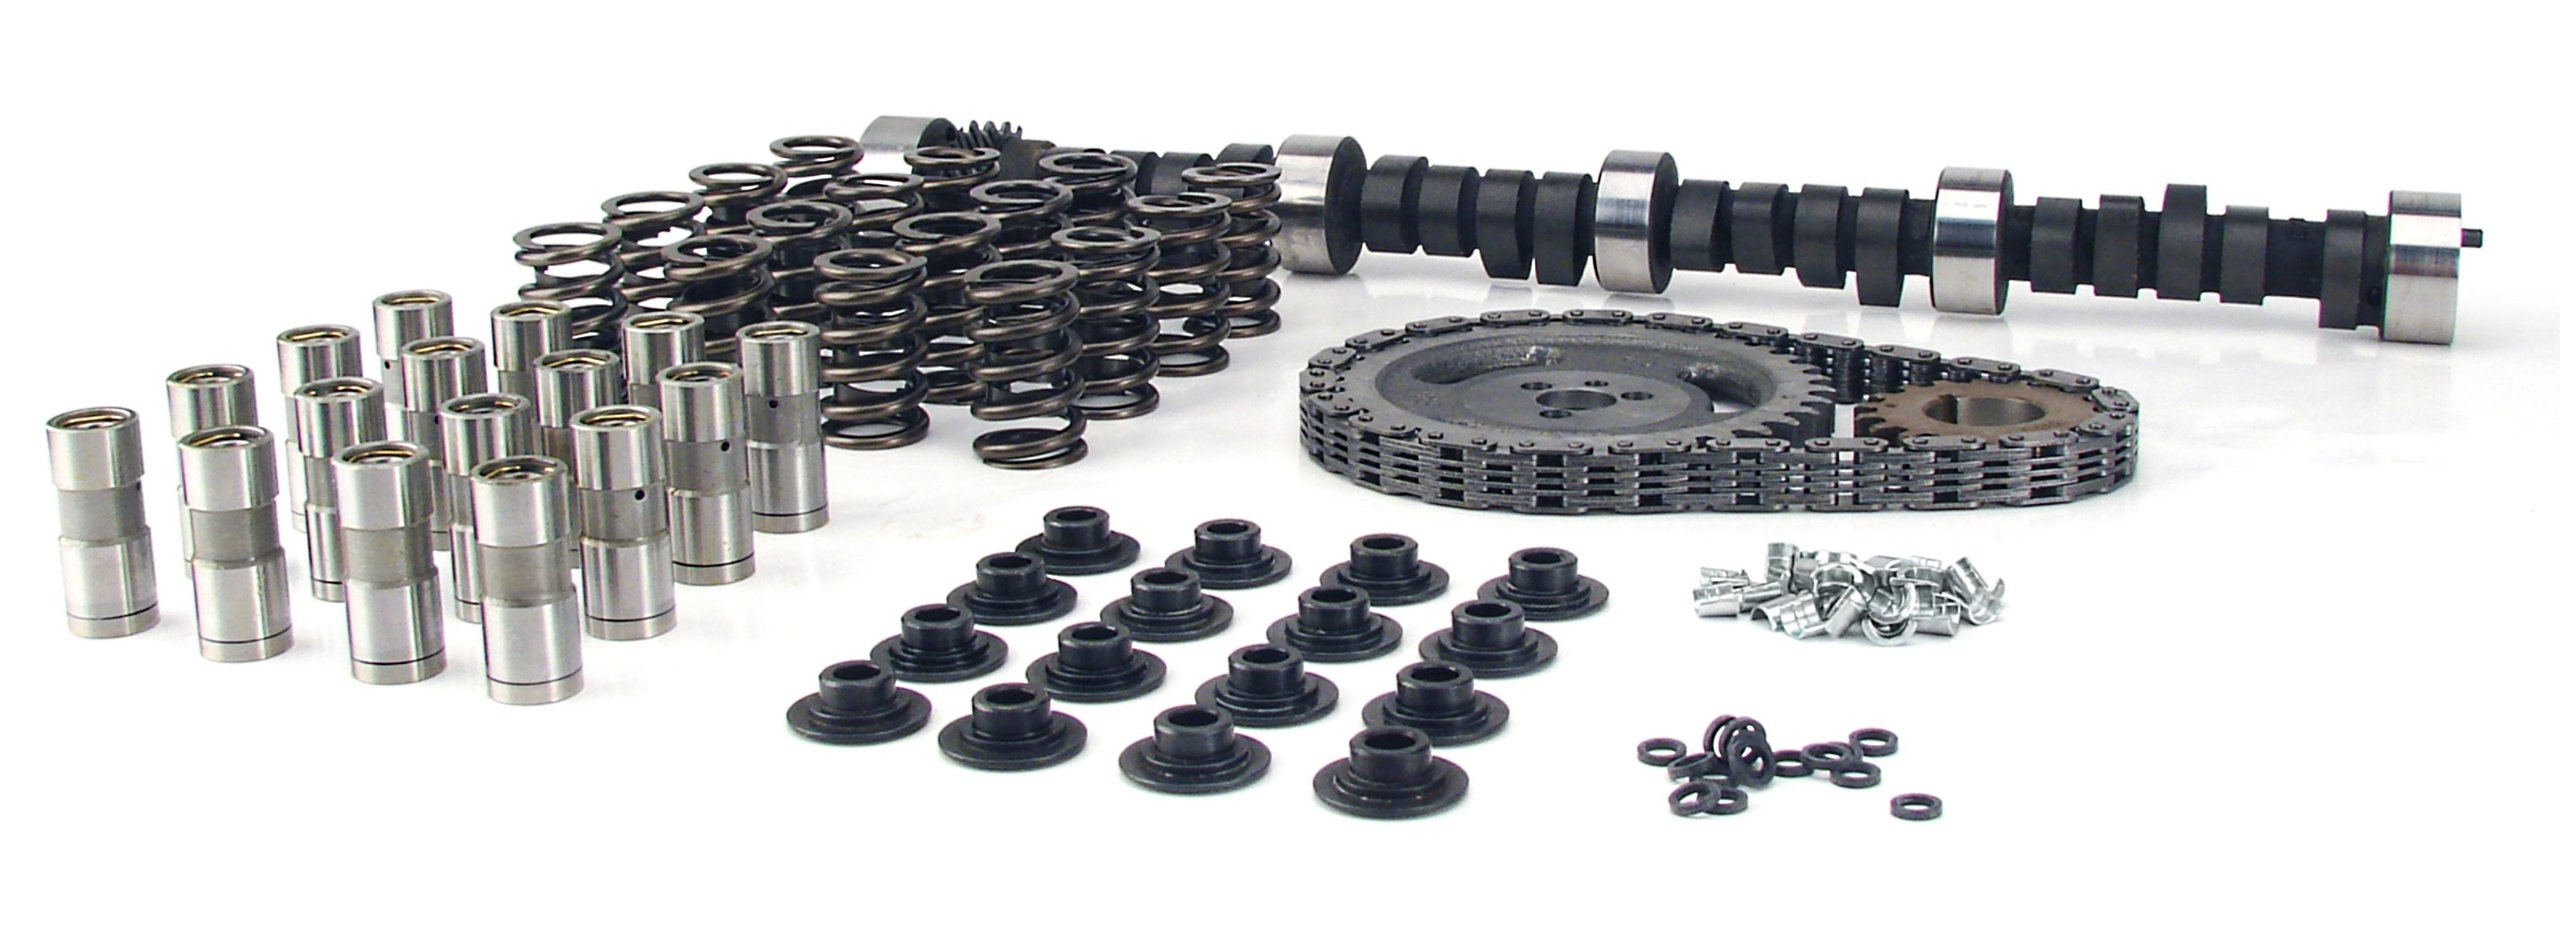 Comp Cams CL12-246-3 SB Chevy XE274H Xtreme Energy Cam and Lifter Kit